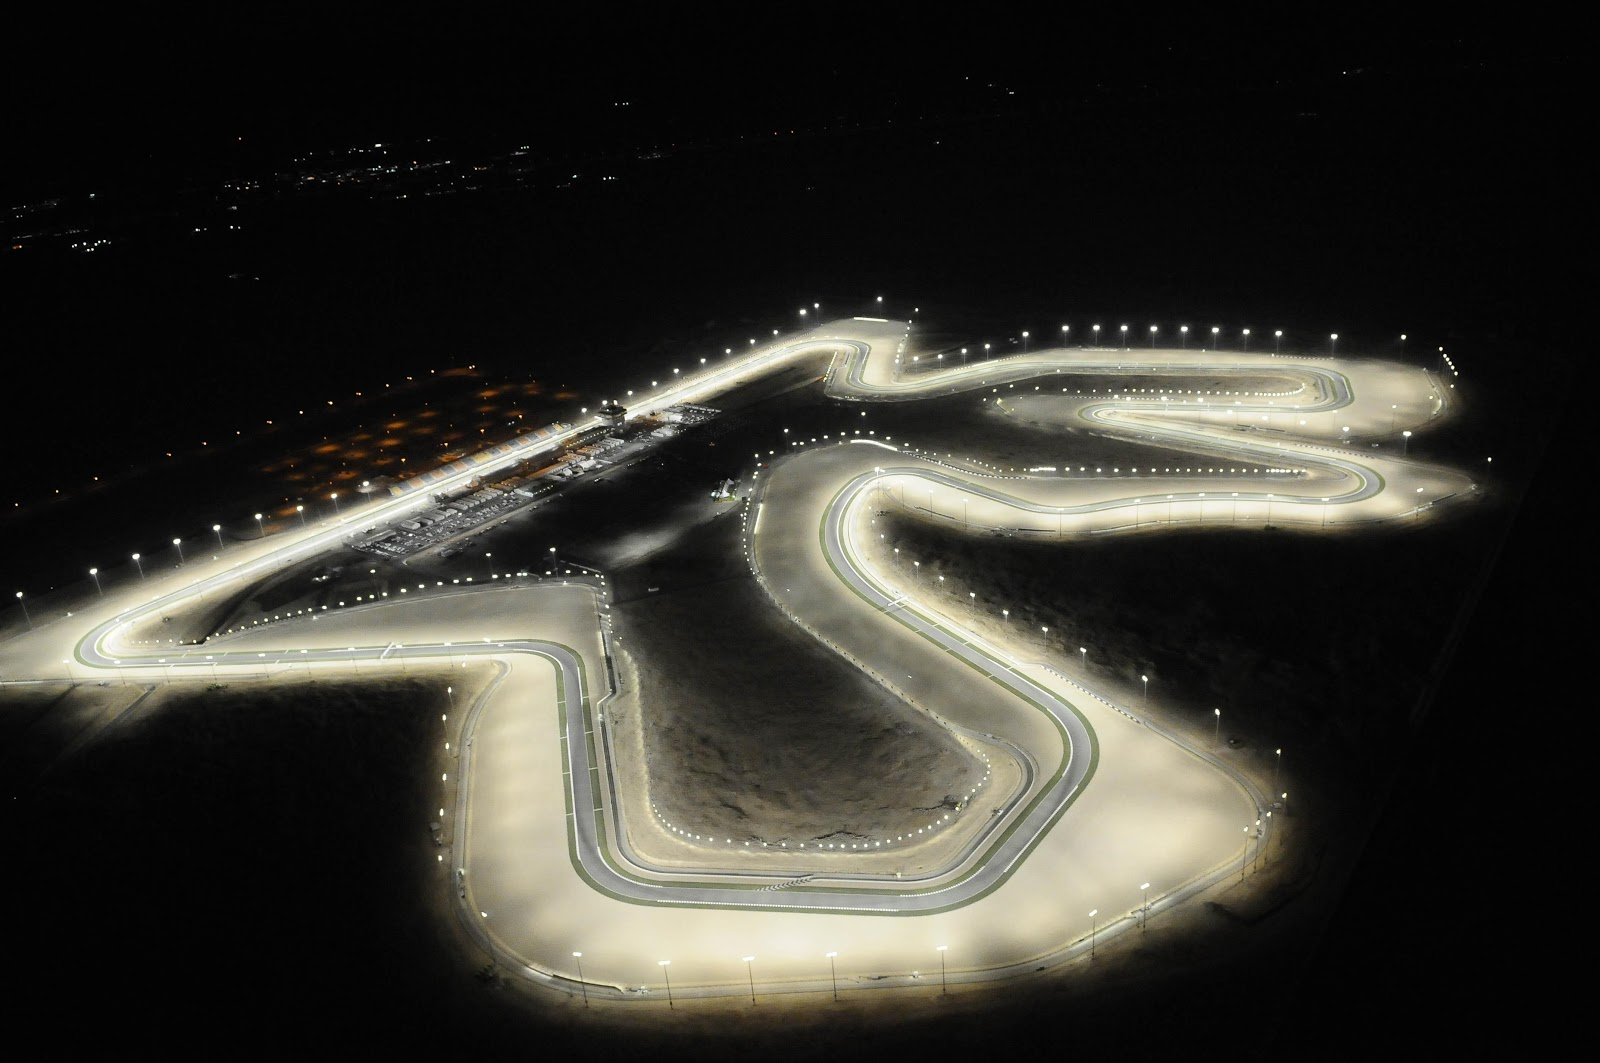 Motoblogn: Motoblogn's 2013 MotoGP Race Track Google Map Views - Races 1 Thru 9